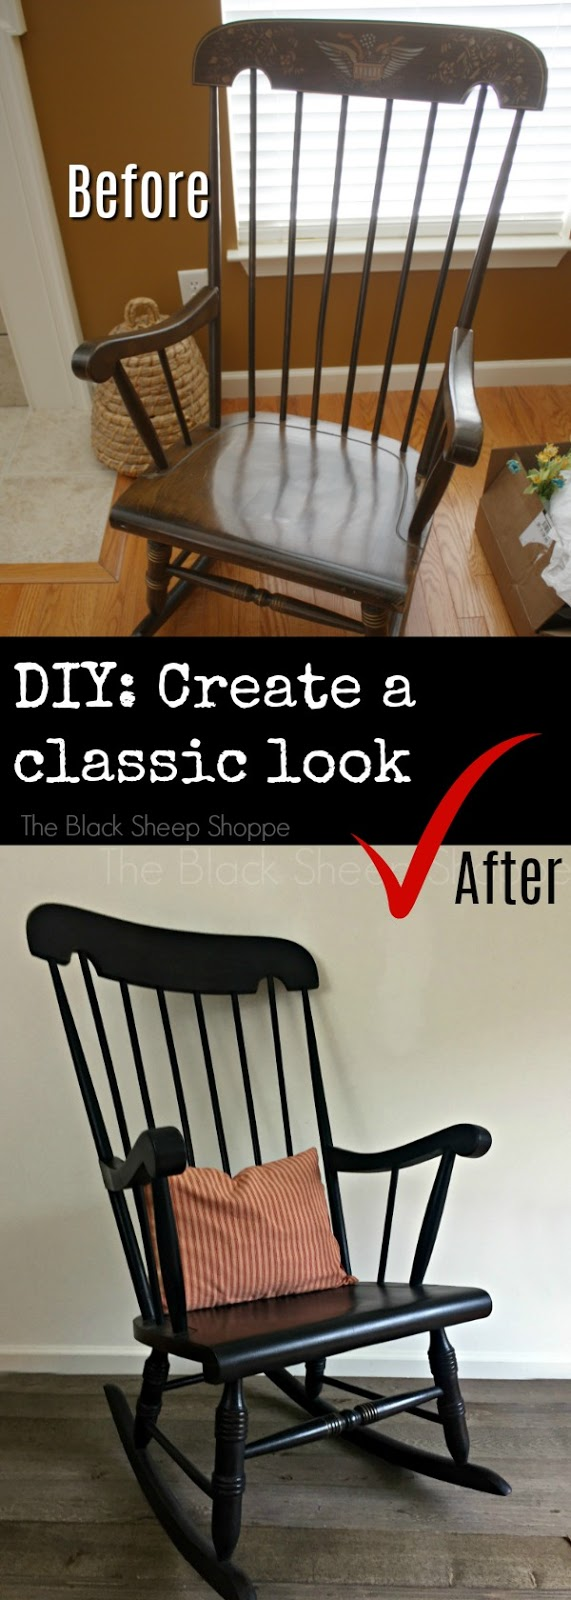 DIY create a classic look with Chalk Paint